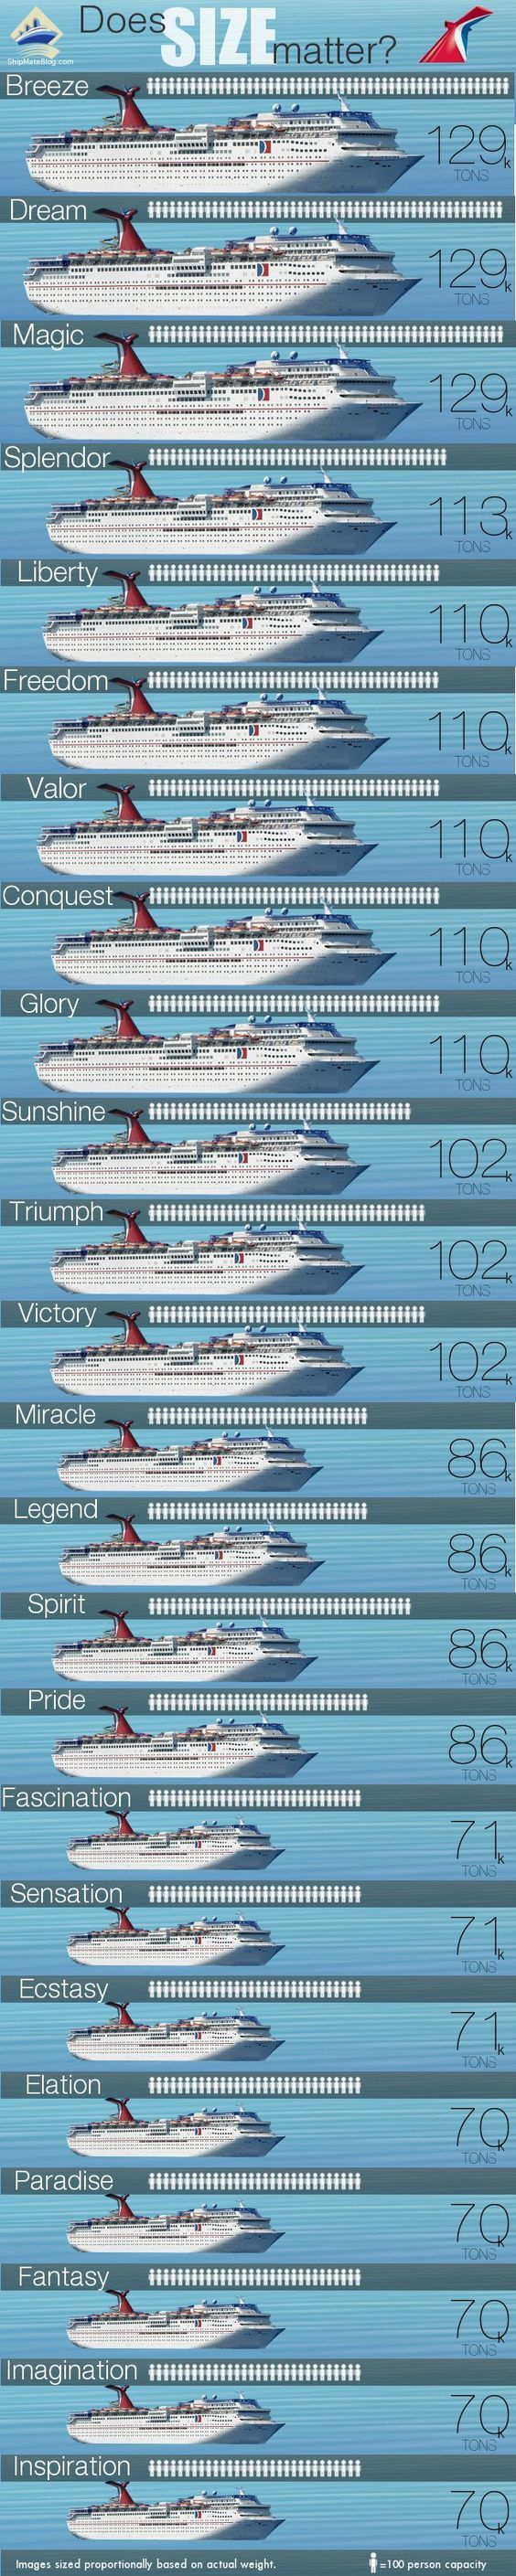 17 best ideas about carnival ships on pinterest carnival cruise ships cruise to caribbean and. Black Bedroom Furniture Sets. Home Design Ideas